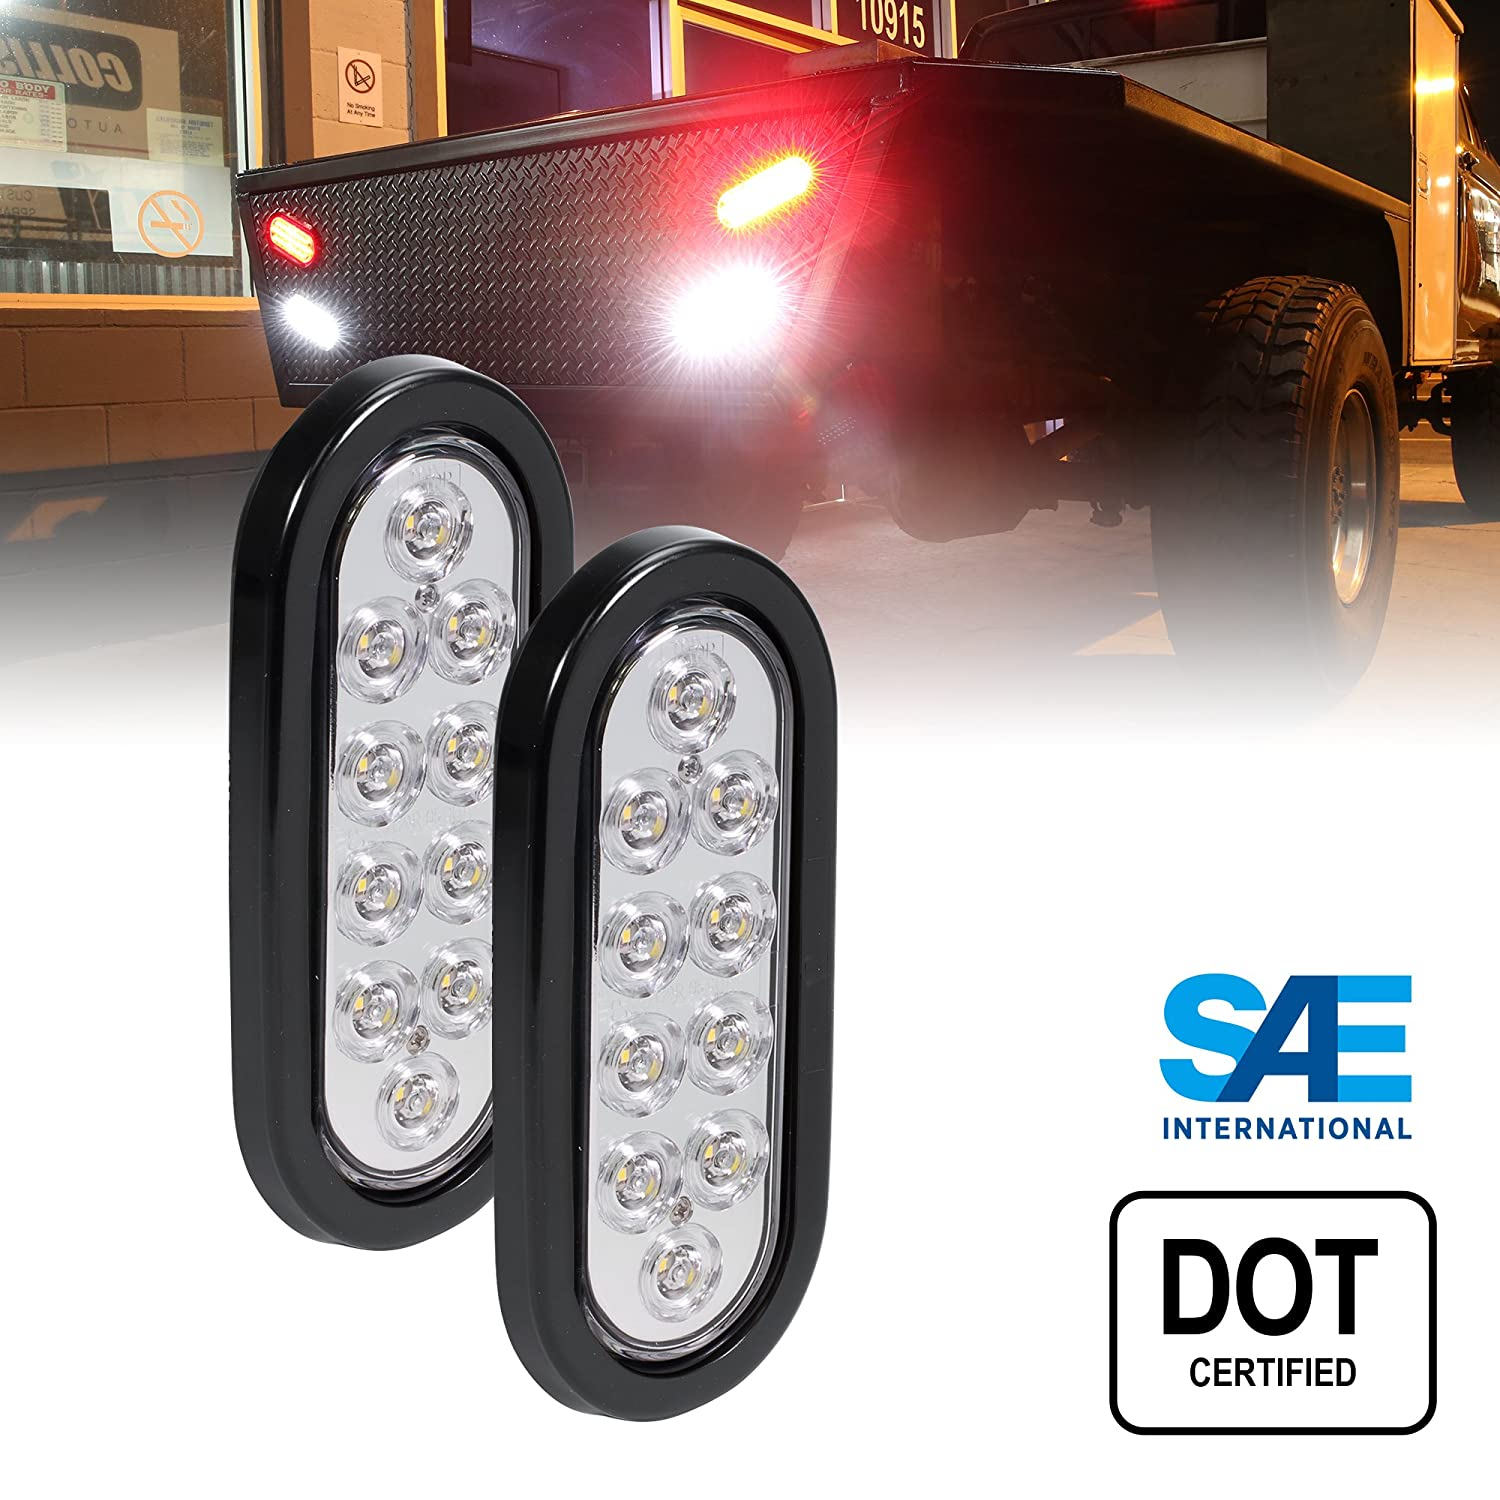 DOT Certified Grommet /& Plug Included IP67 Waterproof 4pc 6 Oval Amber LED Trailer Tail Lights Park Turn Trailer Lights for RV Jeep Trucks